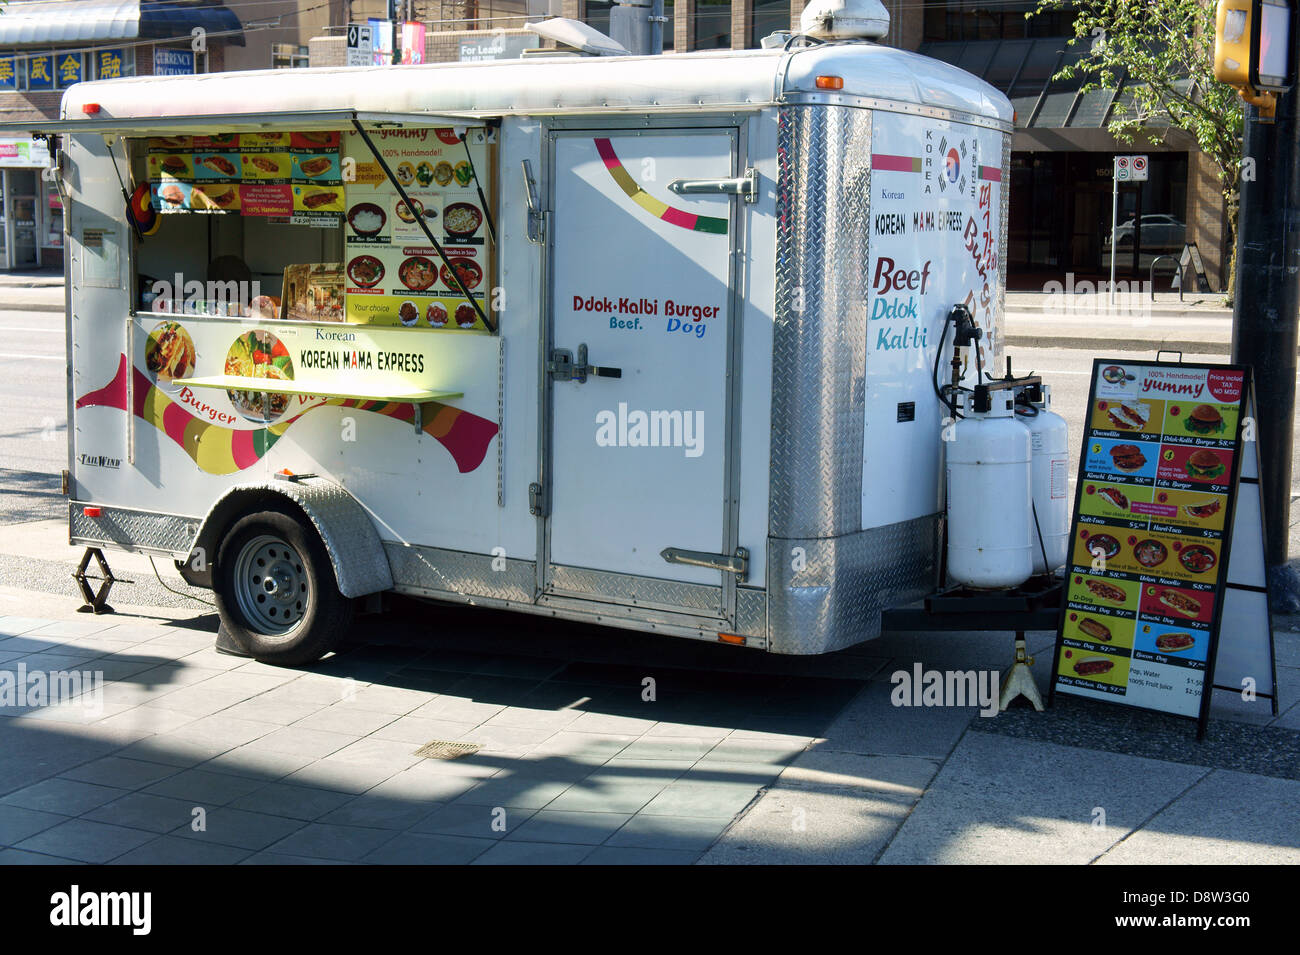 Korean Street Food Truck In Vancouver British Columbia Canada Stock Photo Alamy